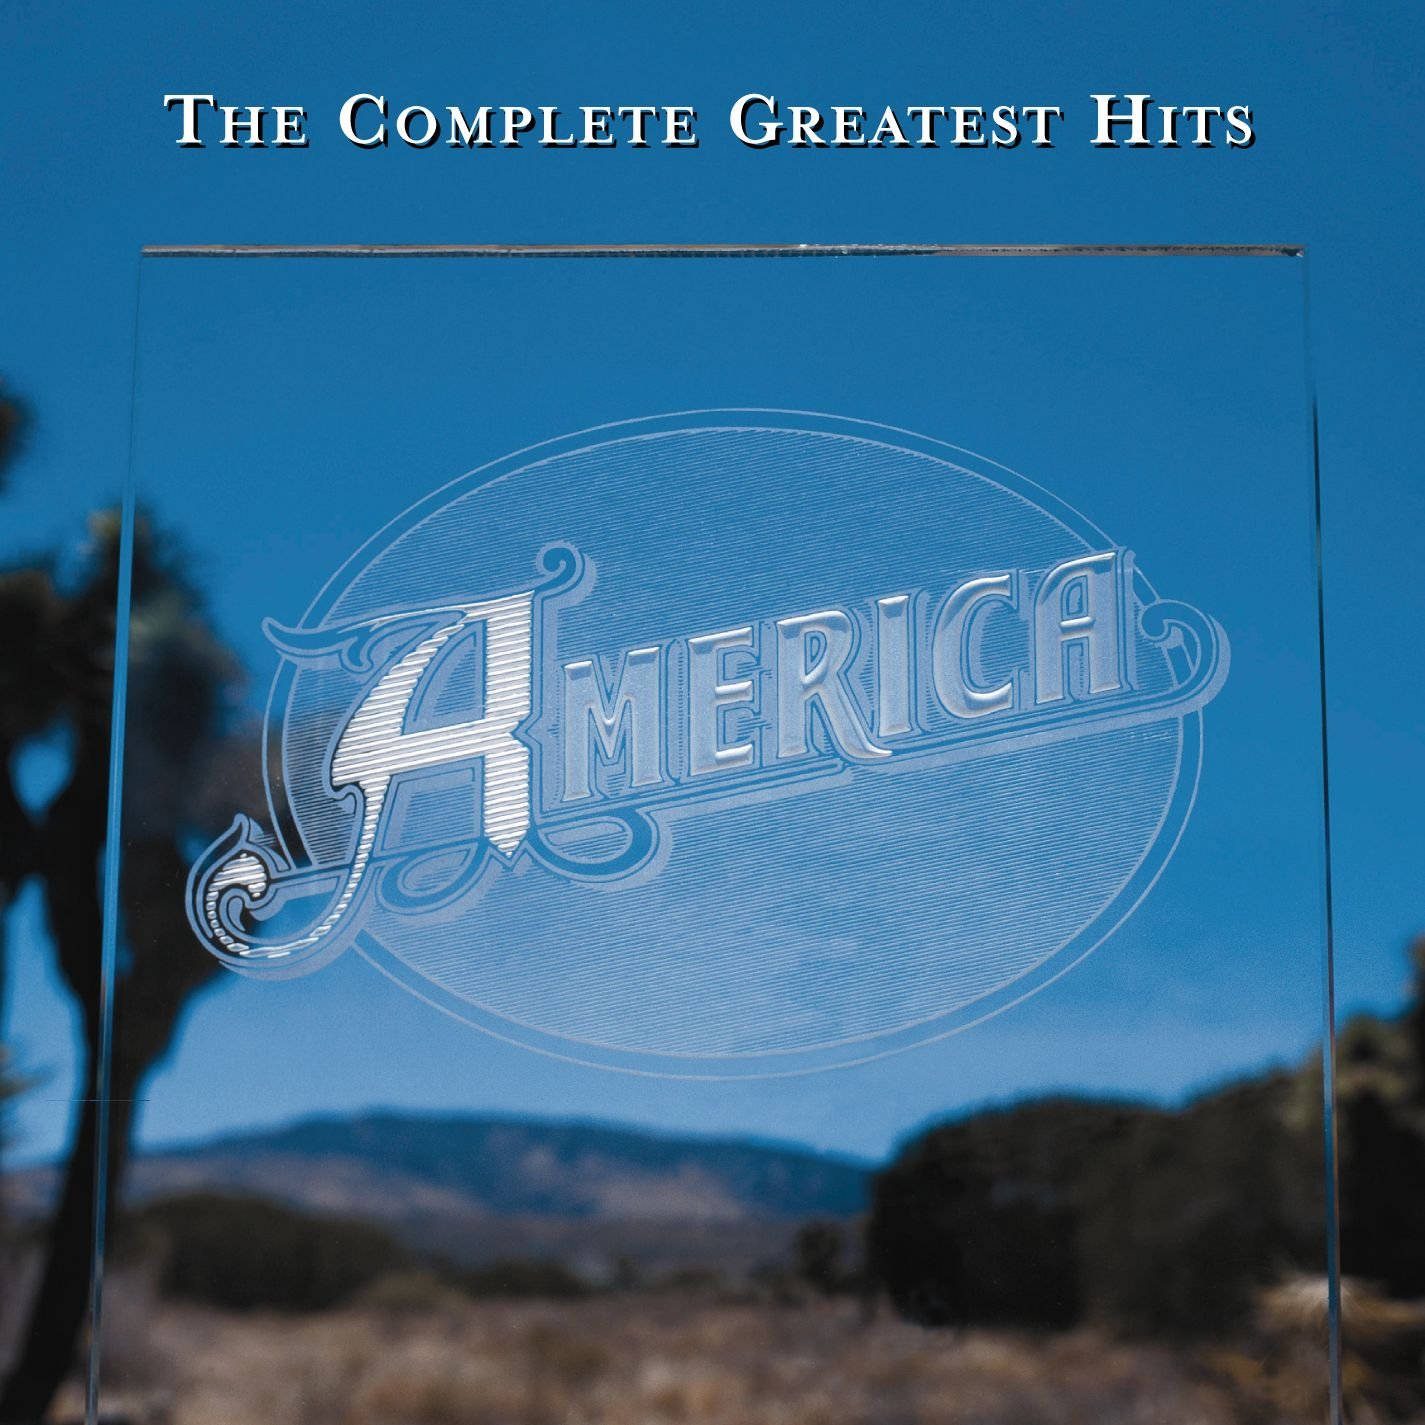 America - The Complete Greatest Hits by America